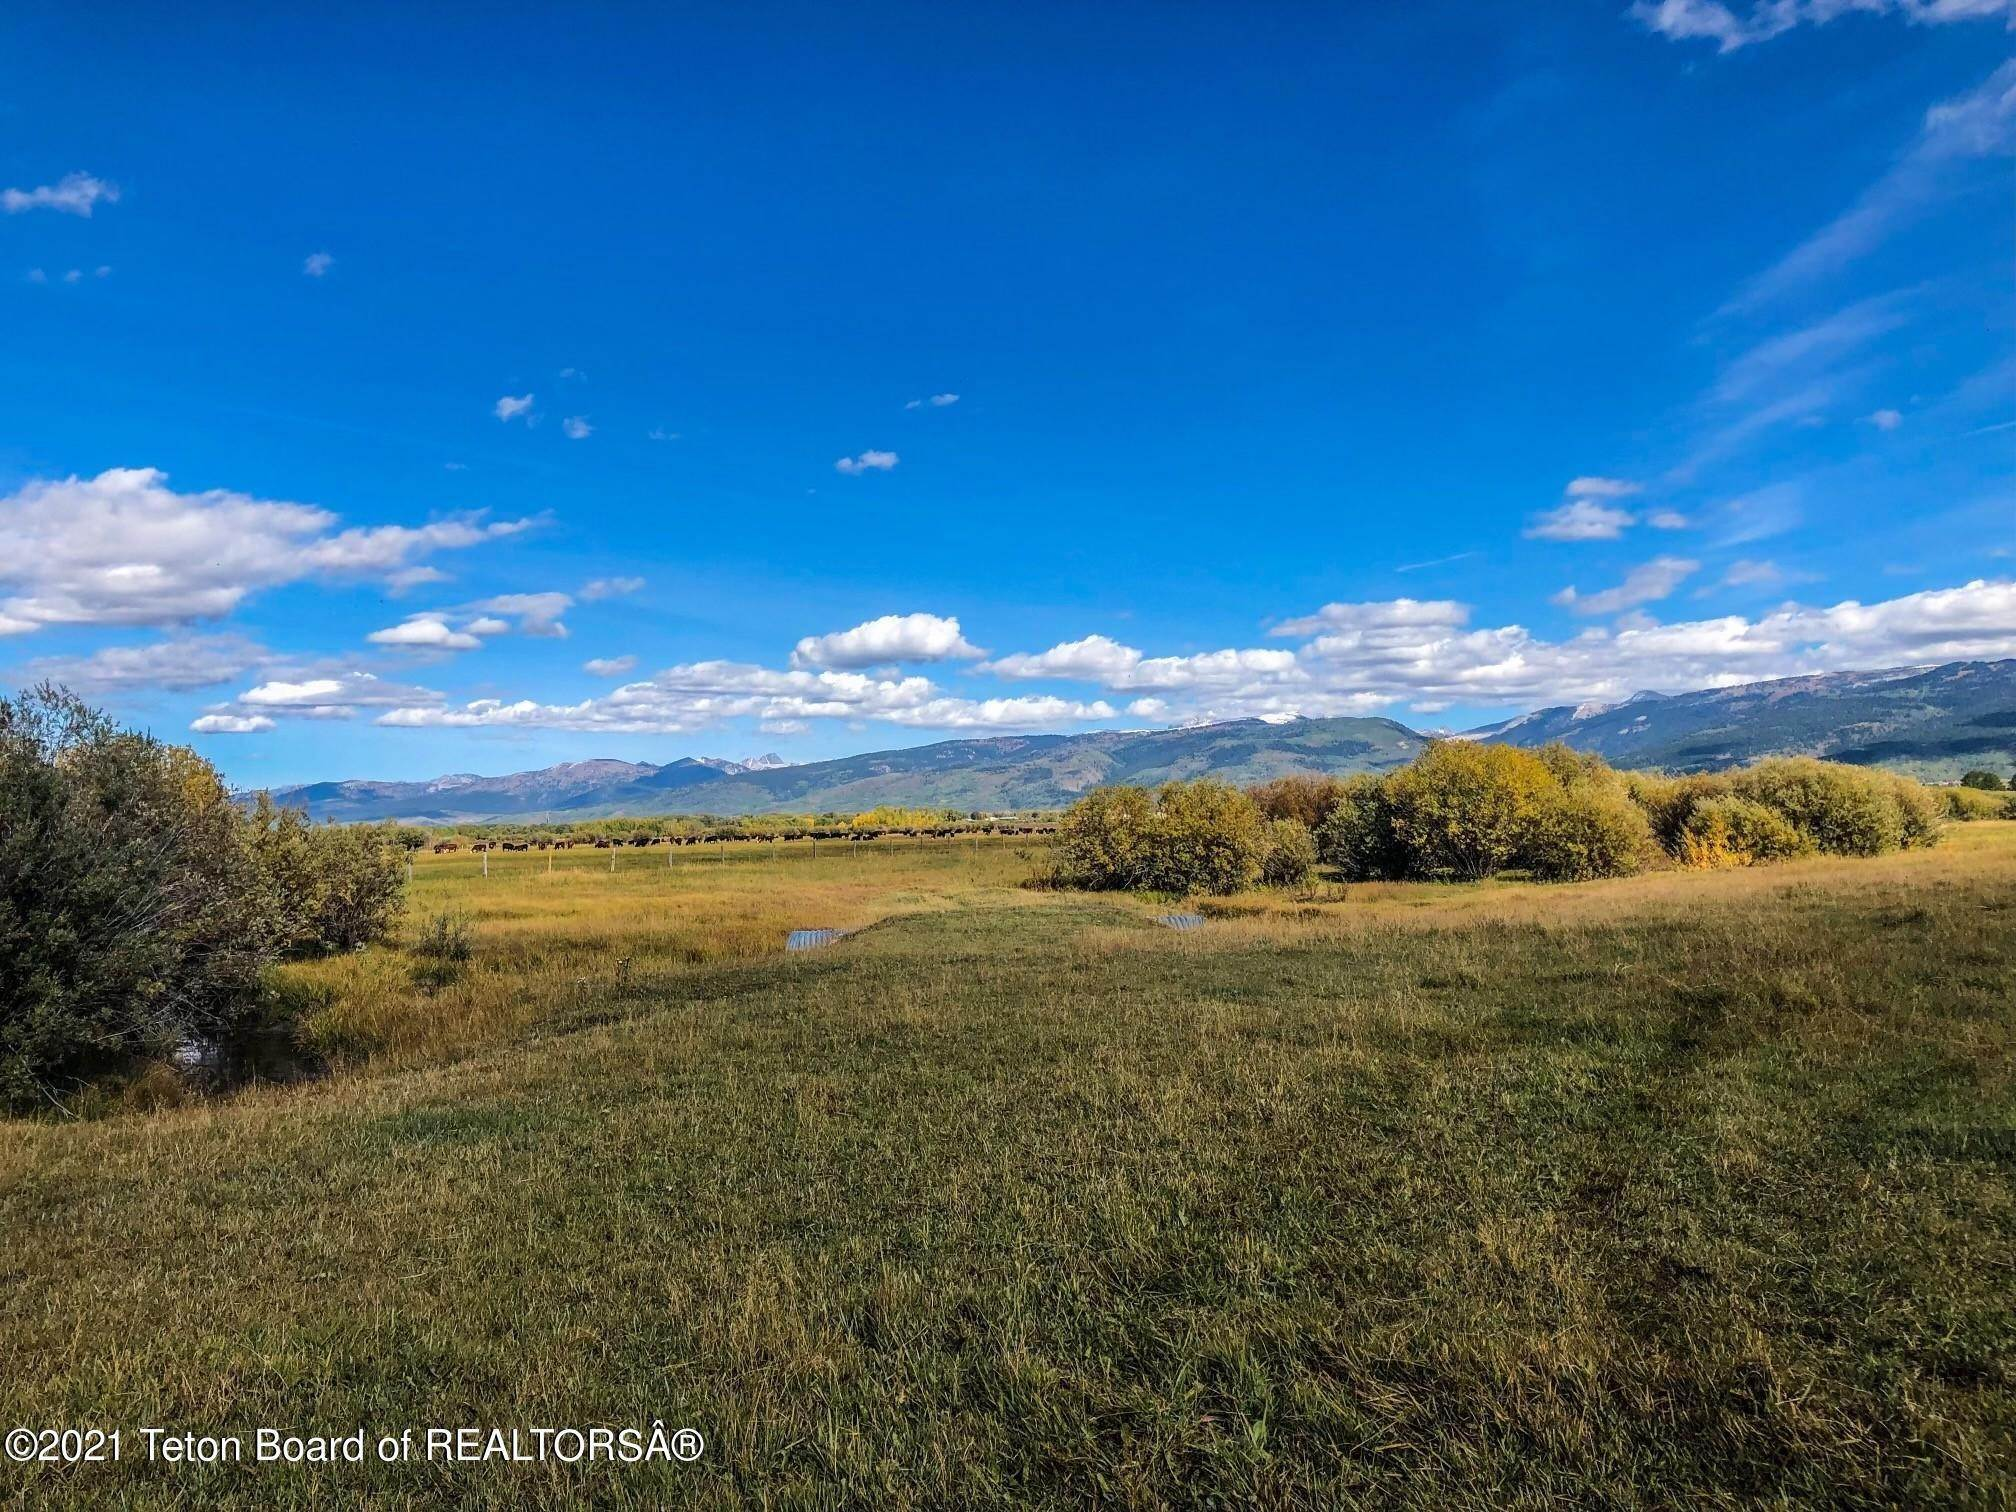 Farm and Ranch Properties for Sale at TBD Victor, Idaho 83455 United States